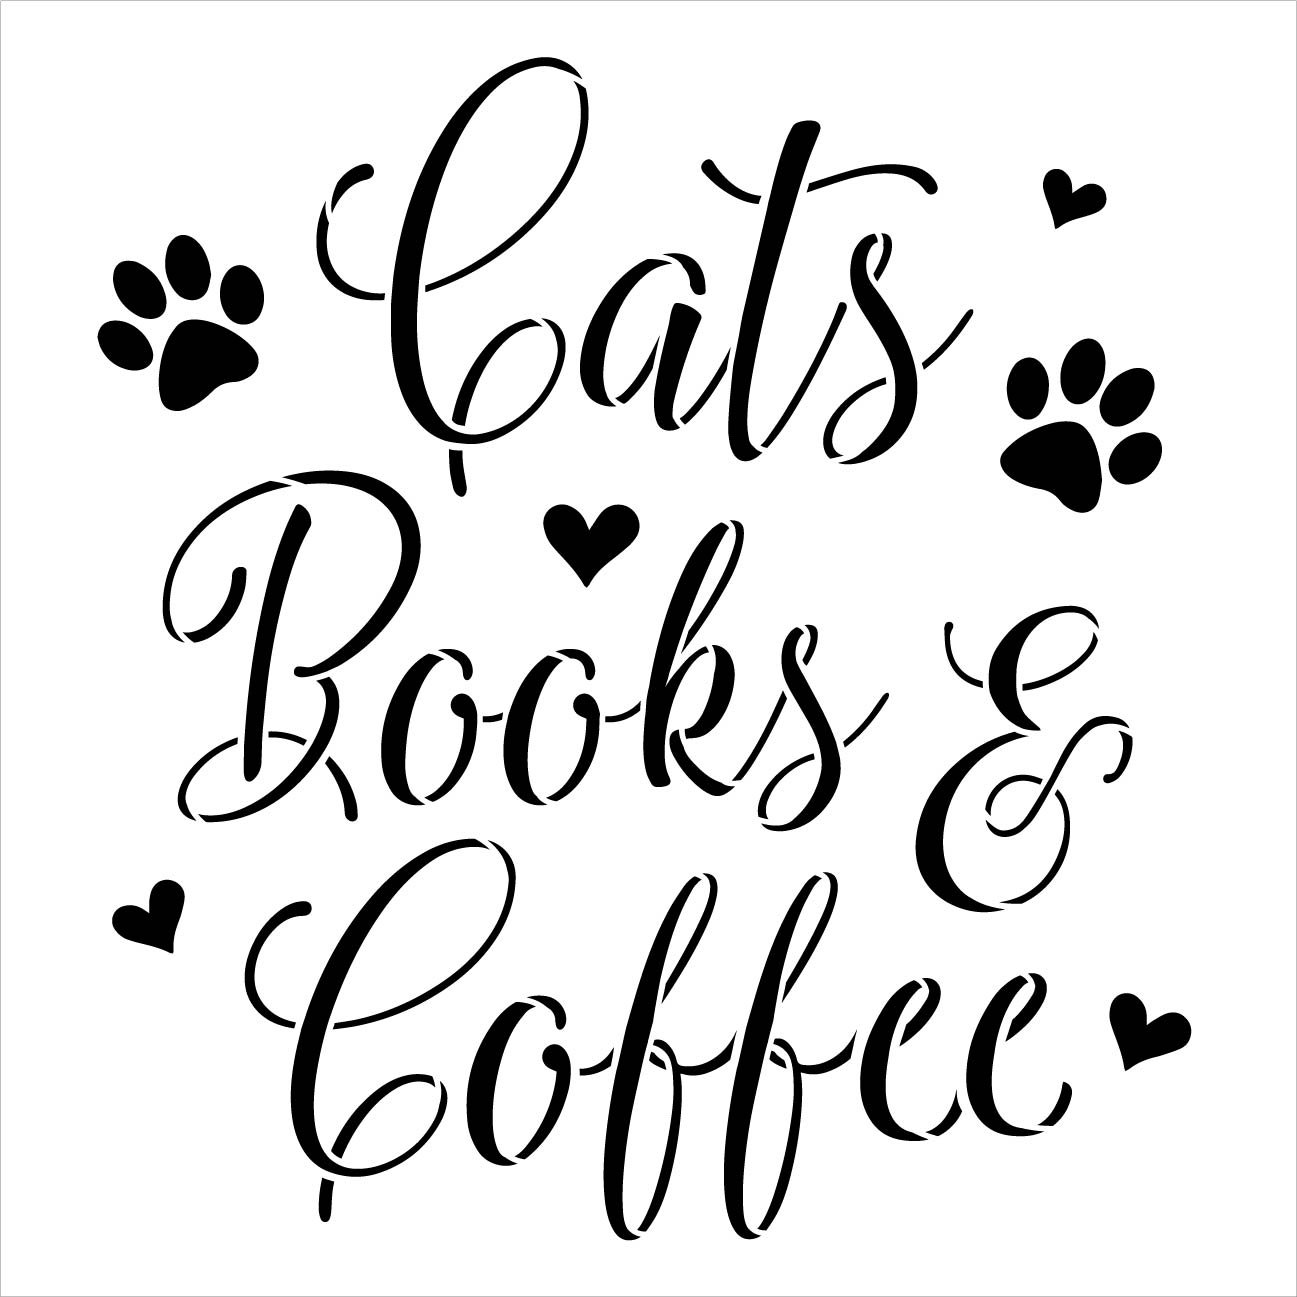 Cats Books & Coffee Stencil with Paw Prints and Hearts by StudioR12 | DIY Pet & Animal Lover Home Decor | Craft & Paint | Select Size